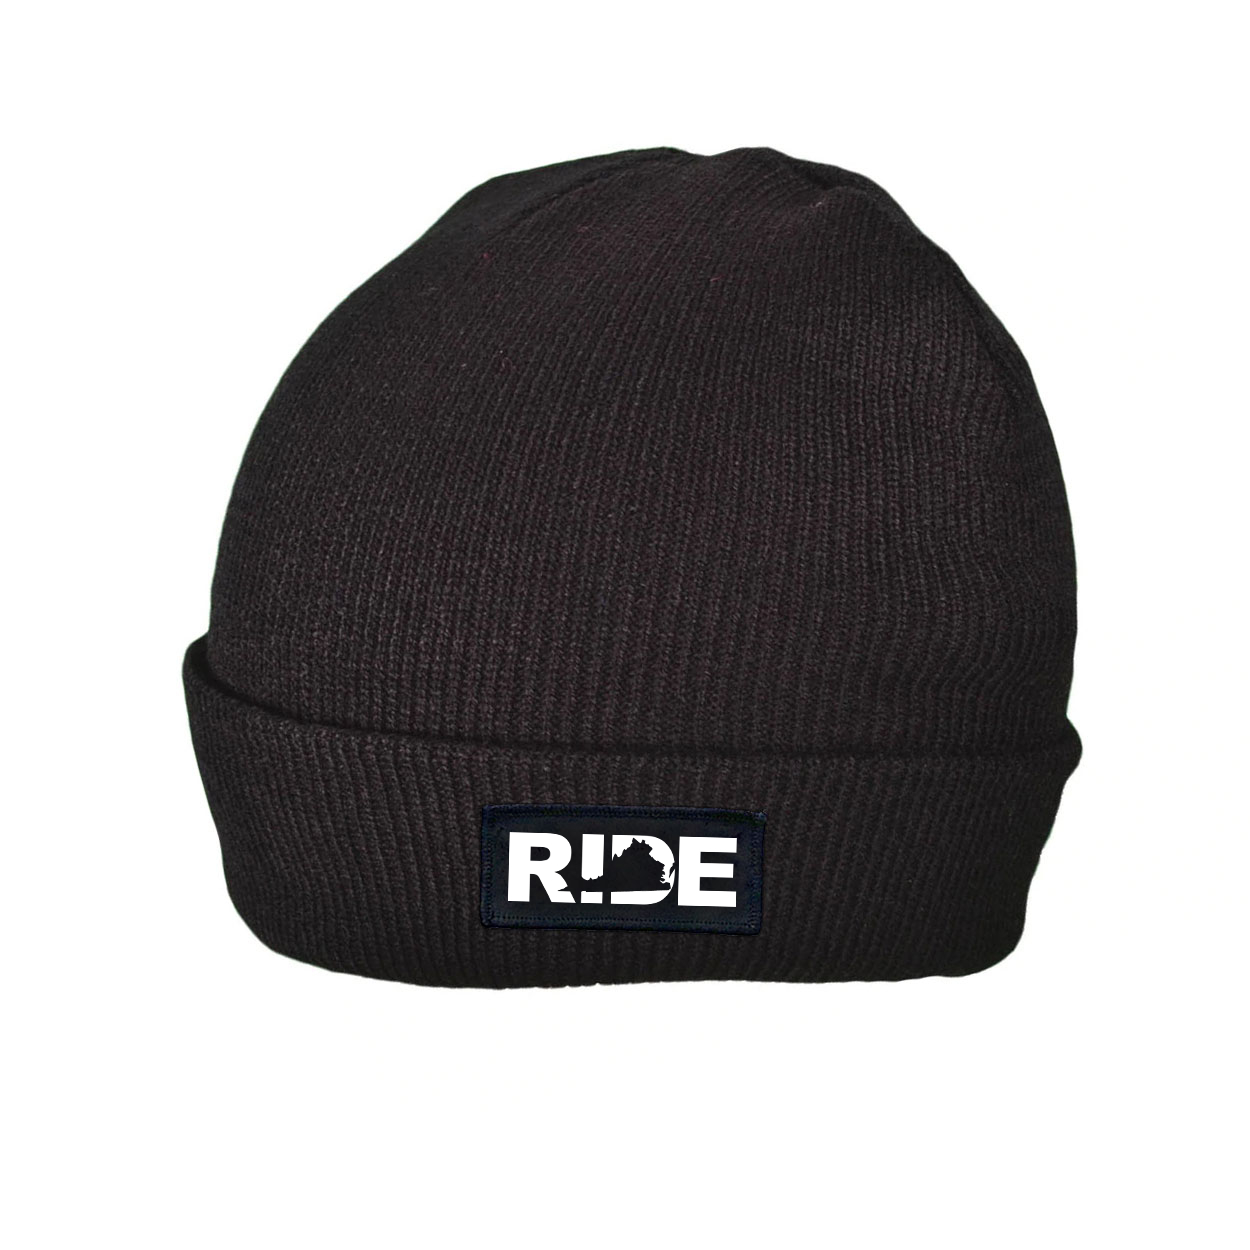 Ride Virginia Night Out Woven Patch Roll Up Skully Beanie Black (White Logo)